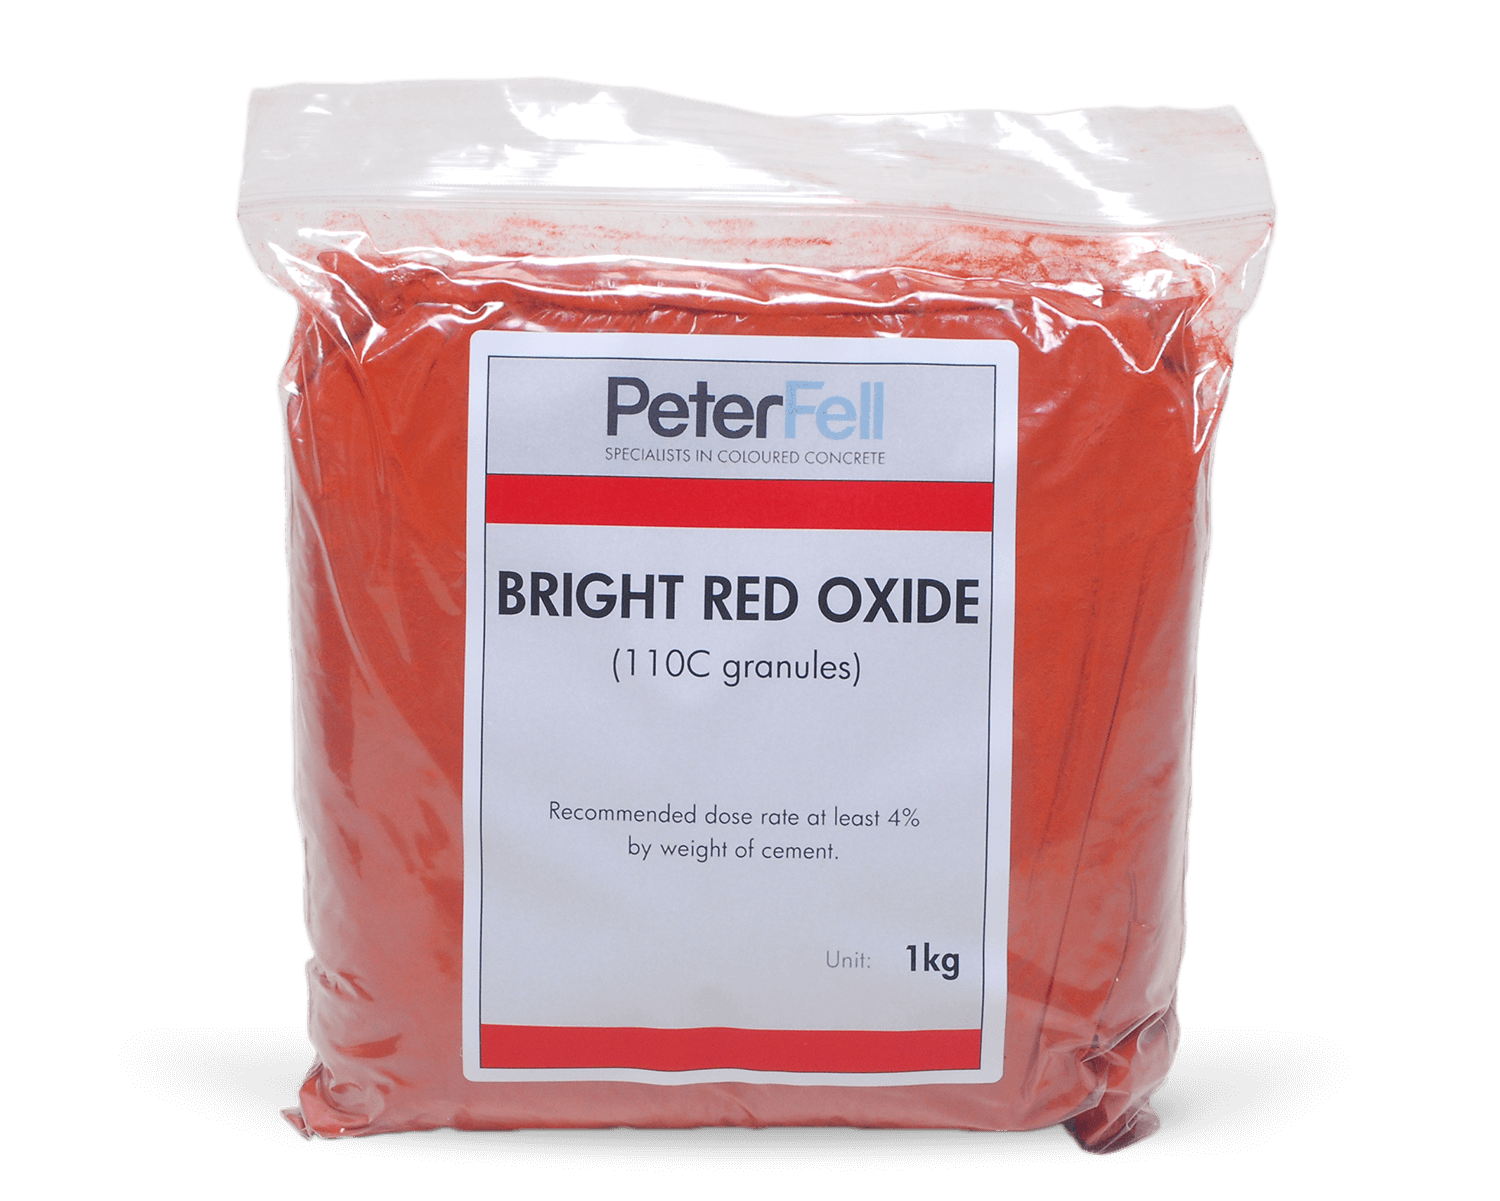 Bright Red Oxide for colouring concrete